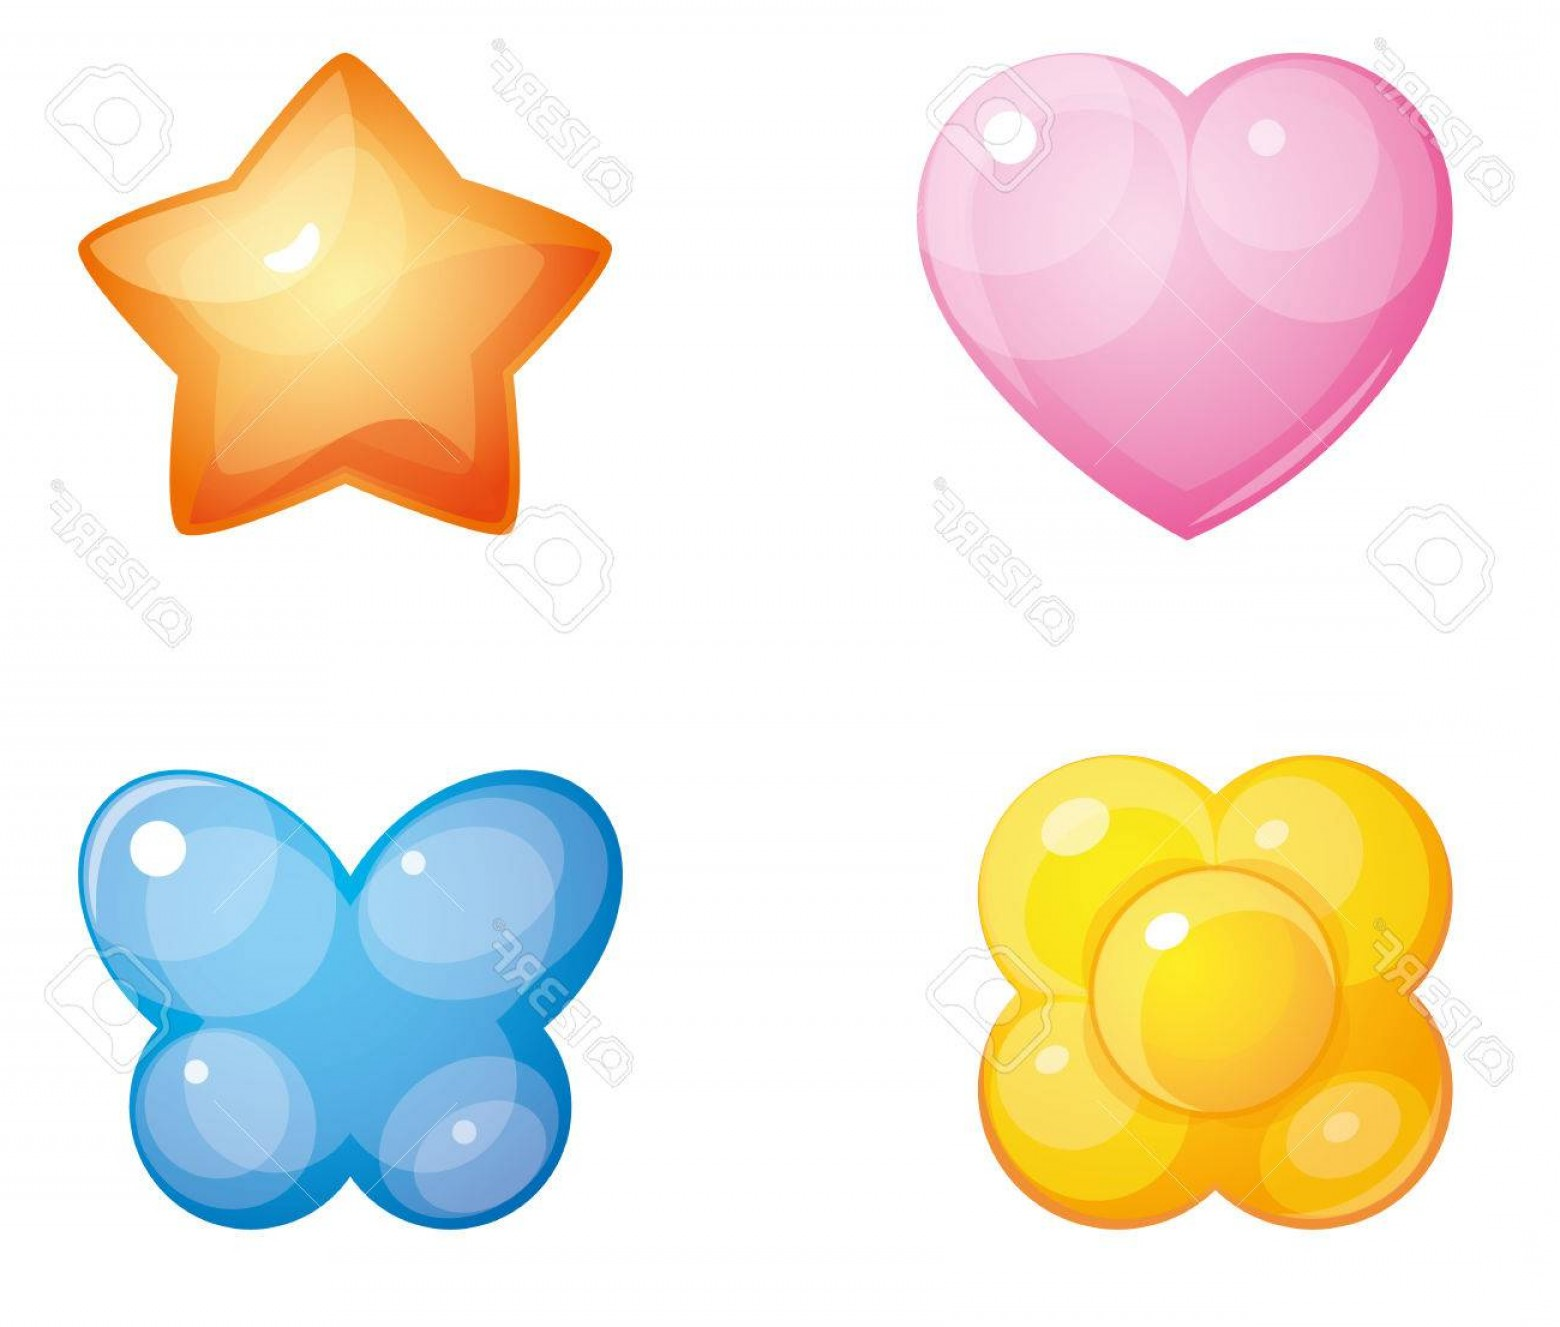 Vectors Heart And Star: Photostock Vector Set Of Convex Glass Buttons Pink Heart Red Star Blue Butterfly Yellow Flower Isolated On White Backg